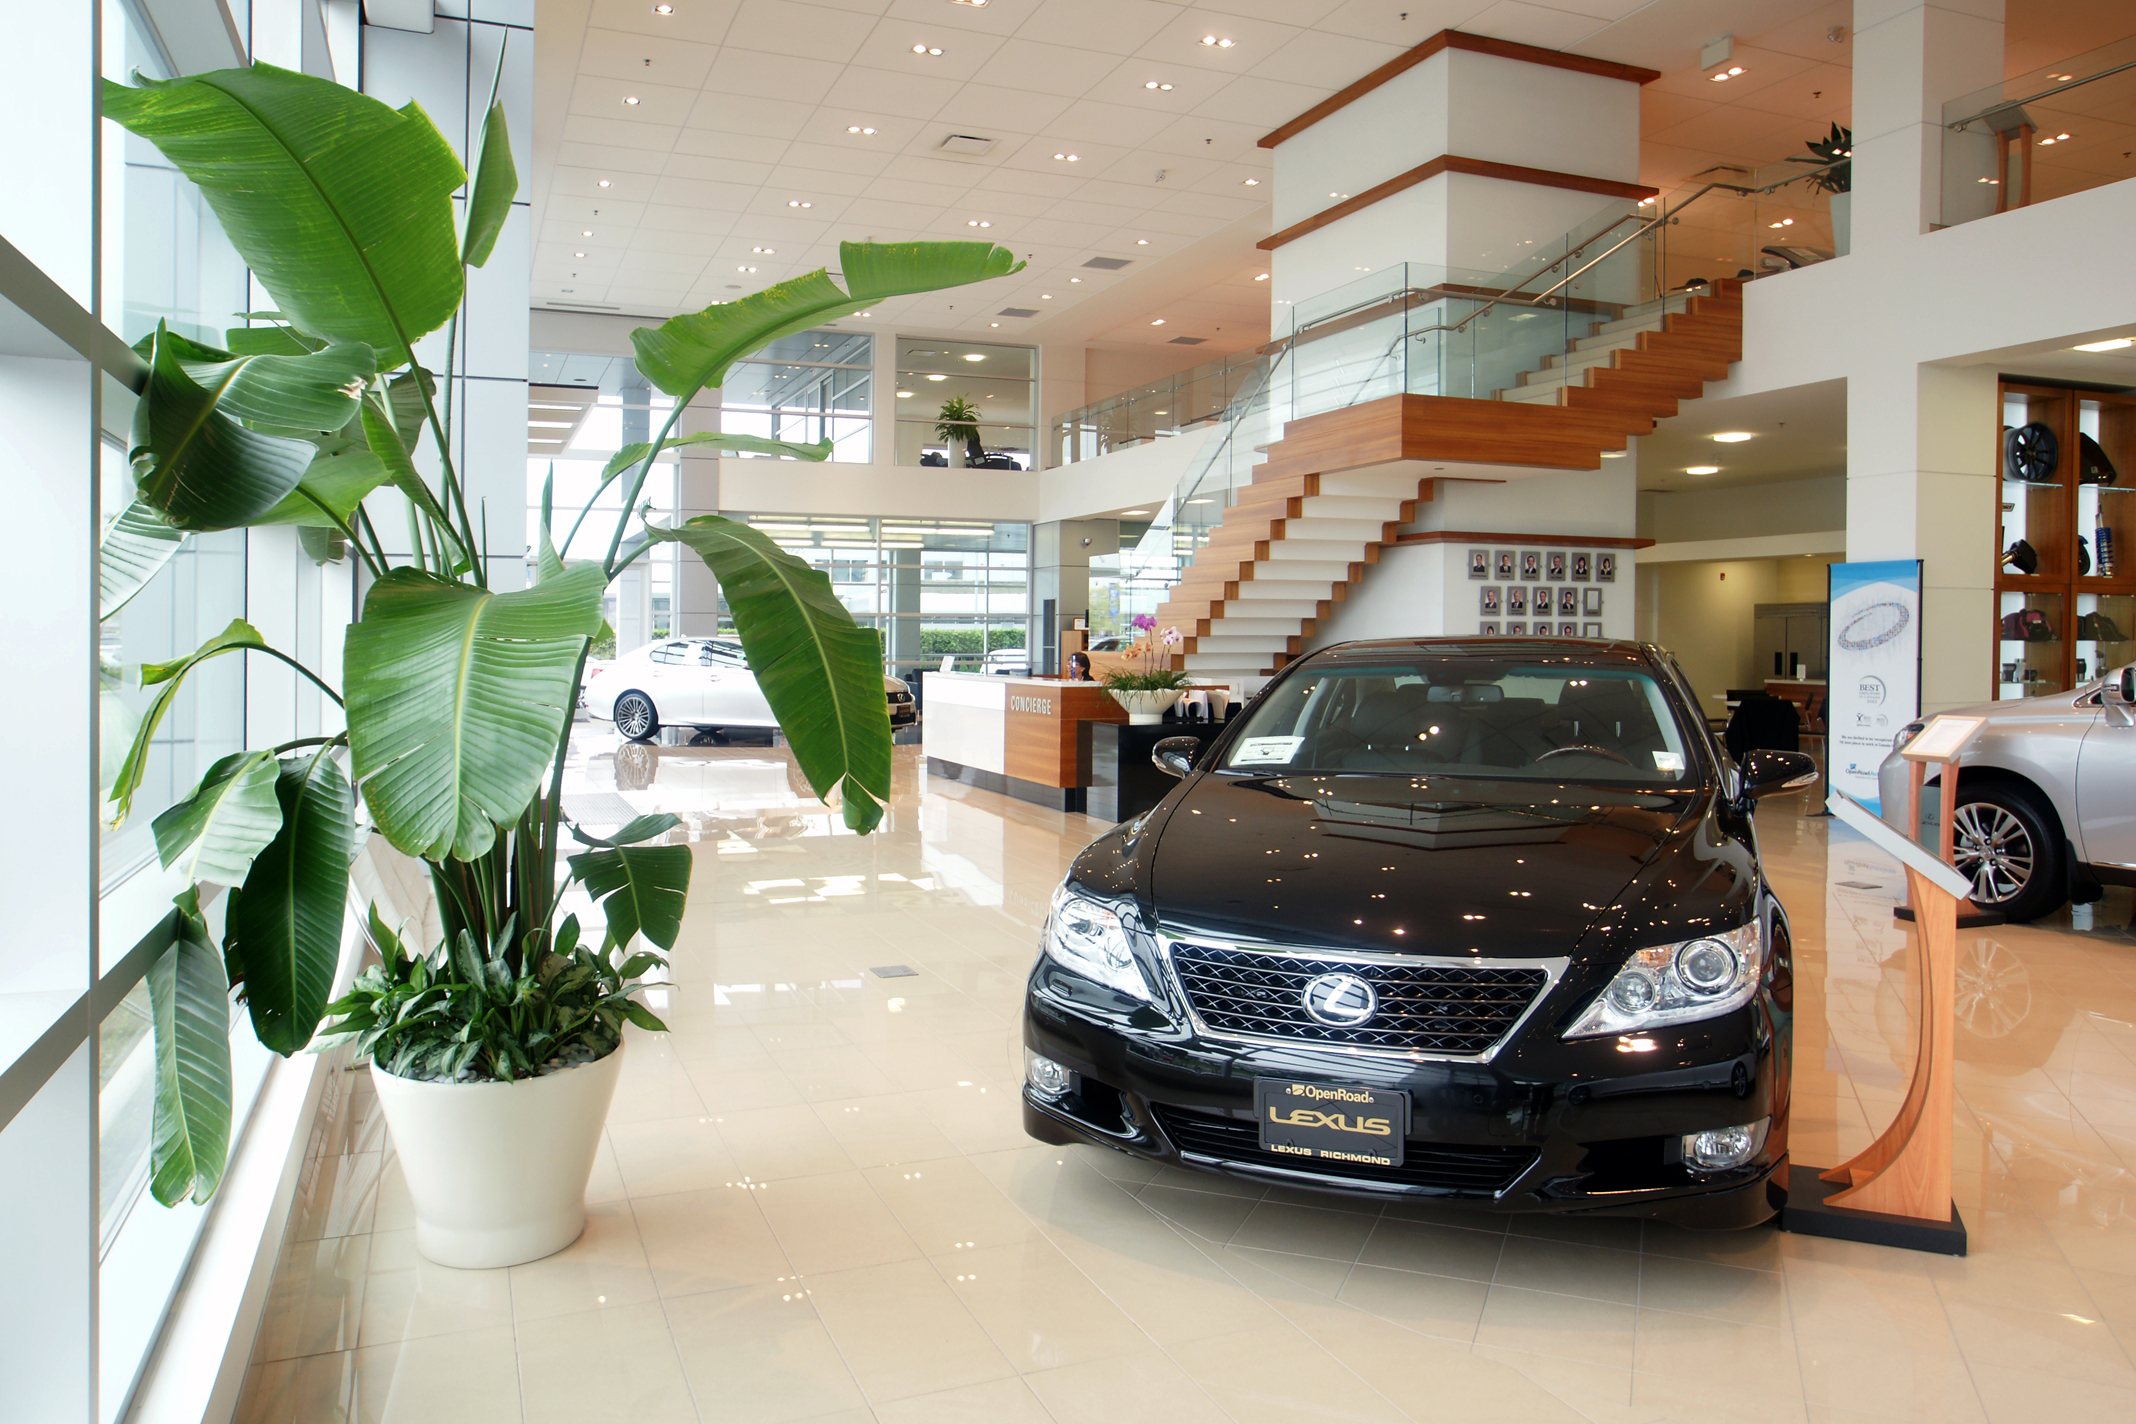 Car Dealership Interior Design